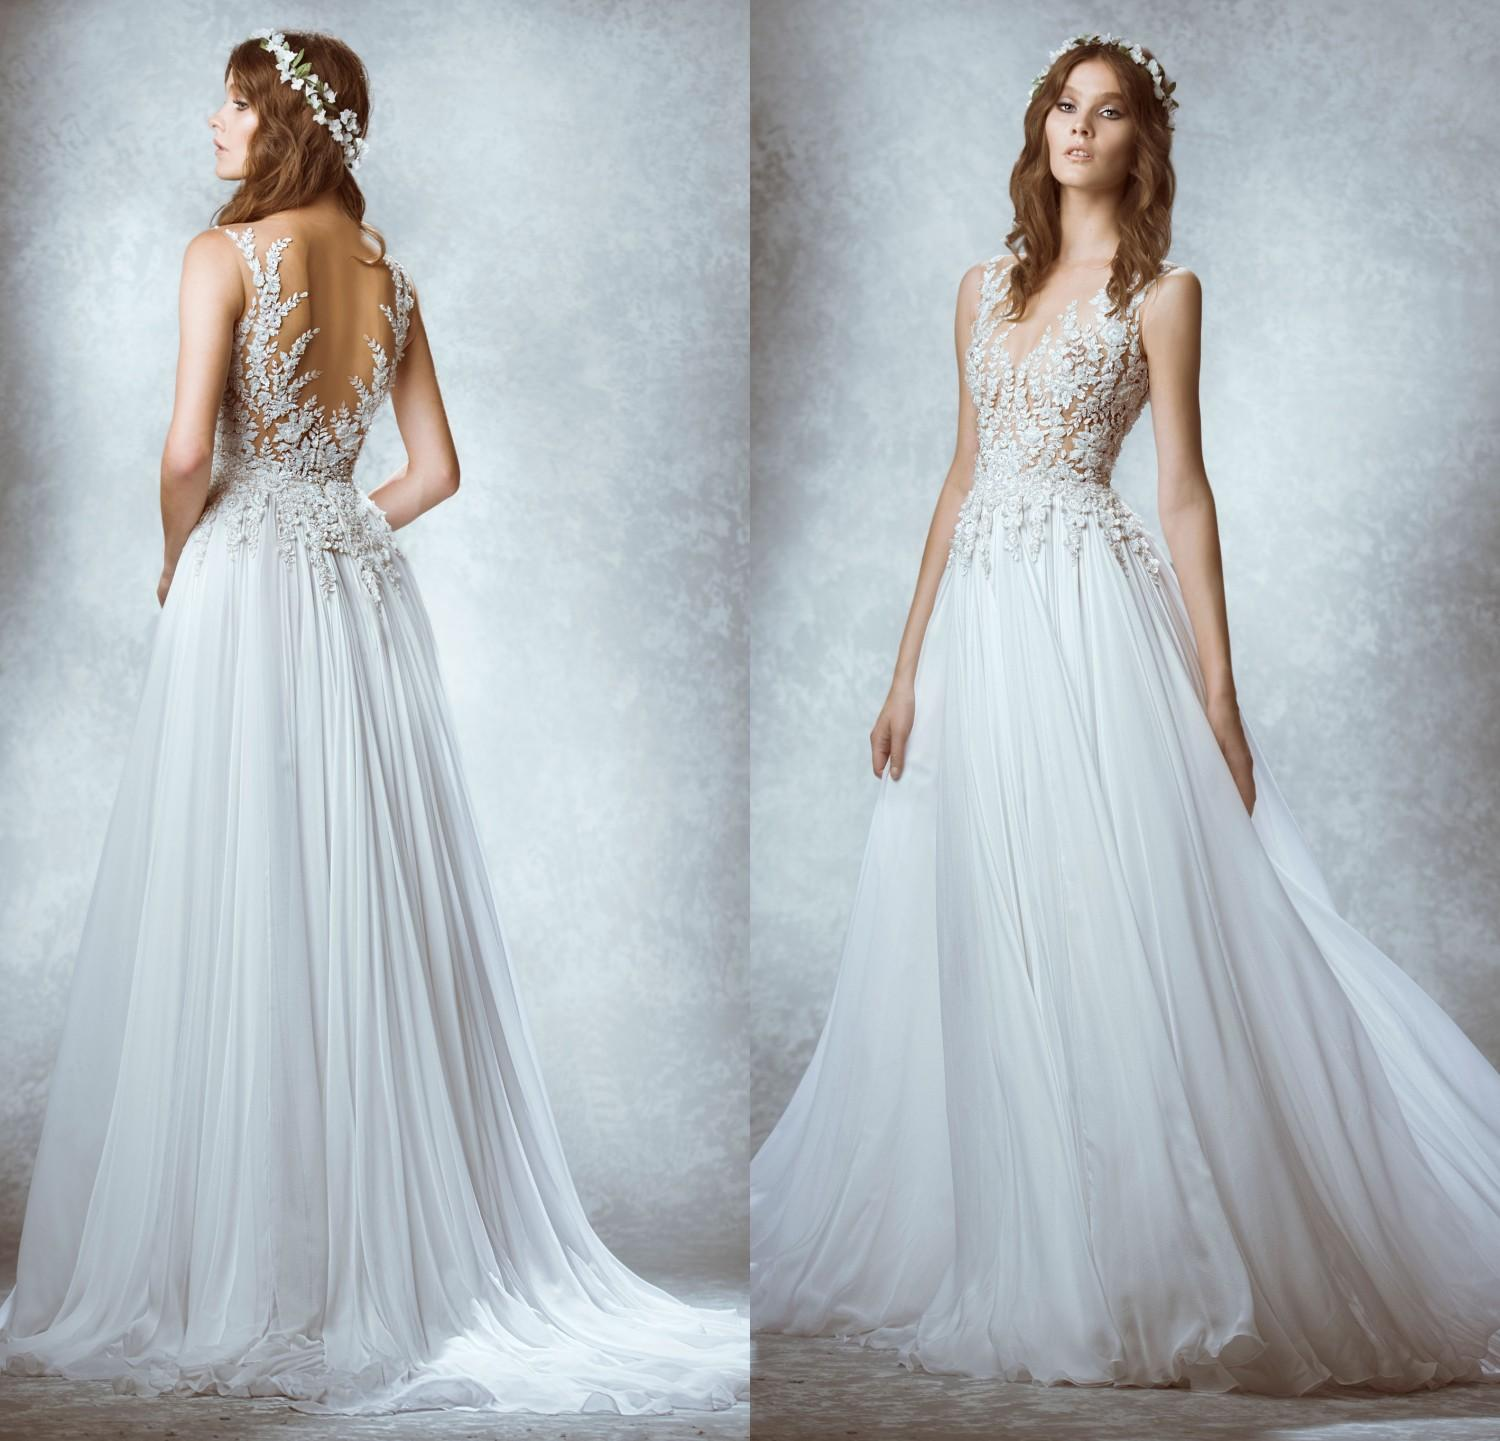 Discount Gorgeous Zuhair Murad Wedding Dresses 2015 Latest ...